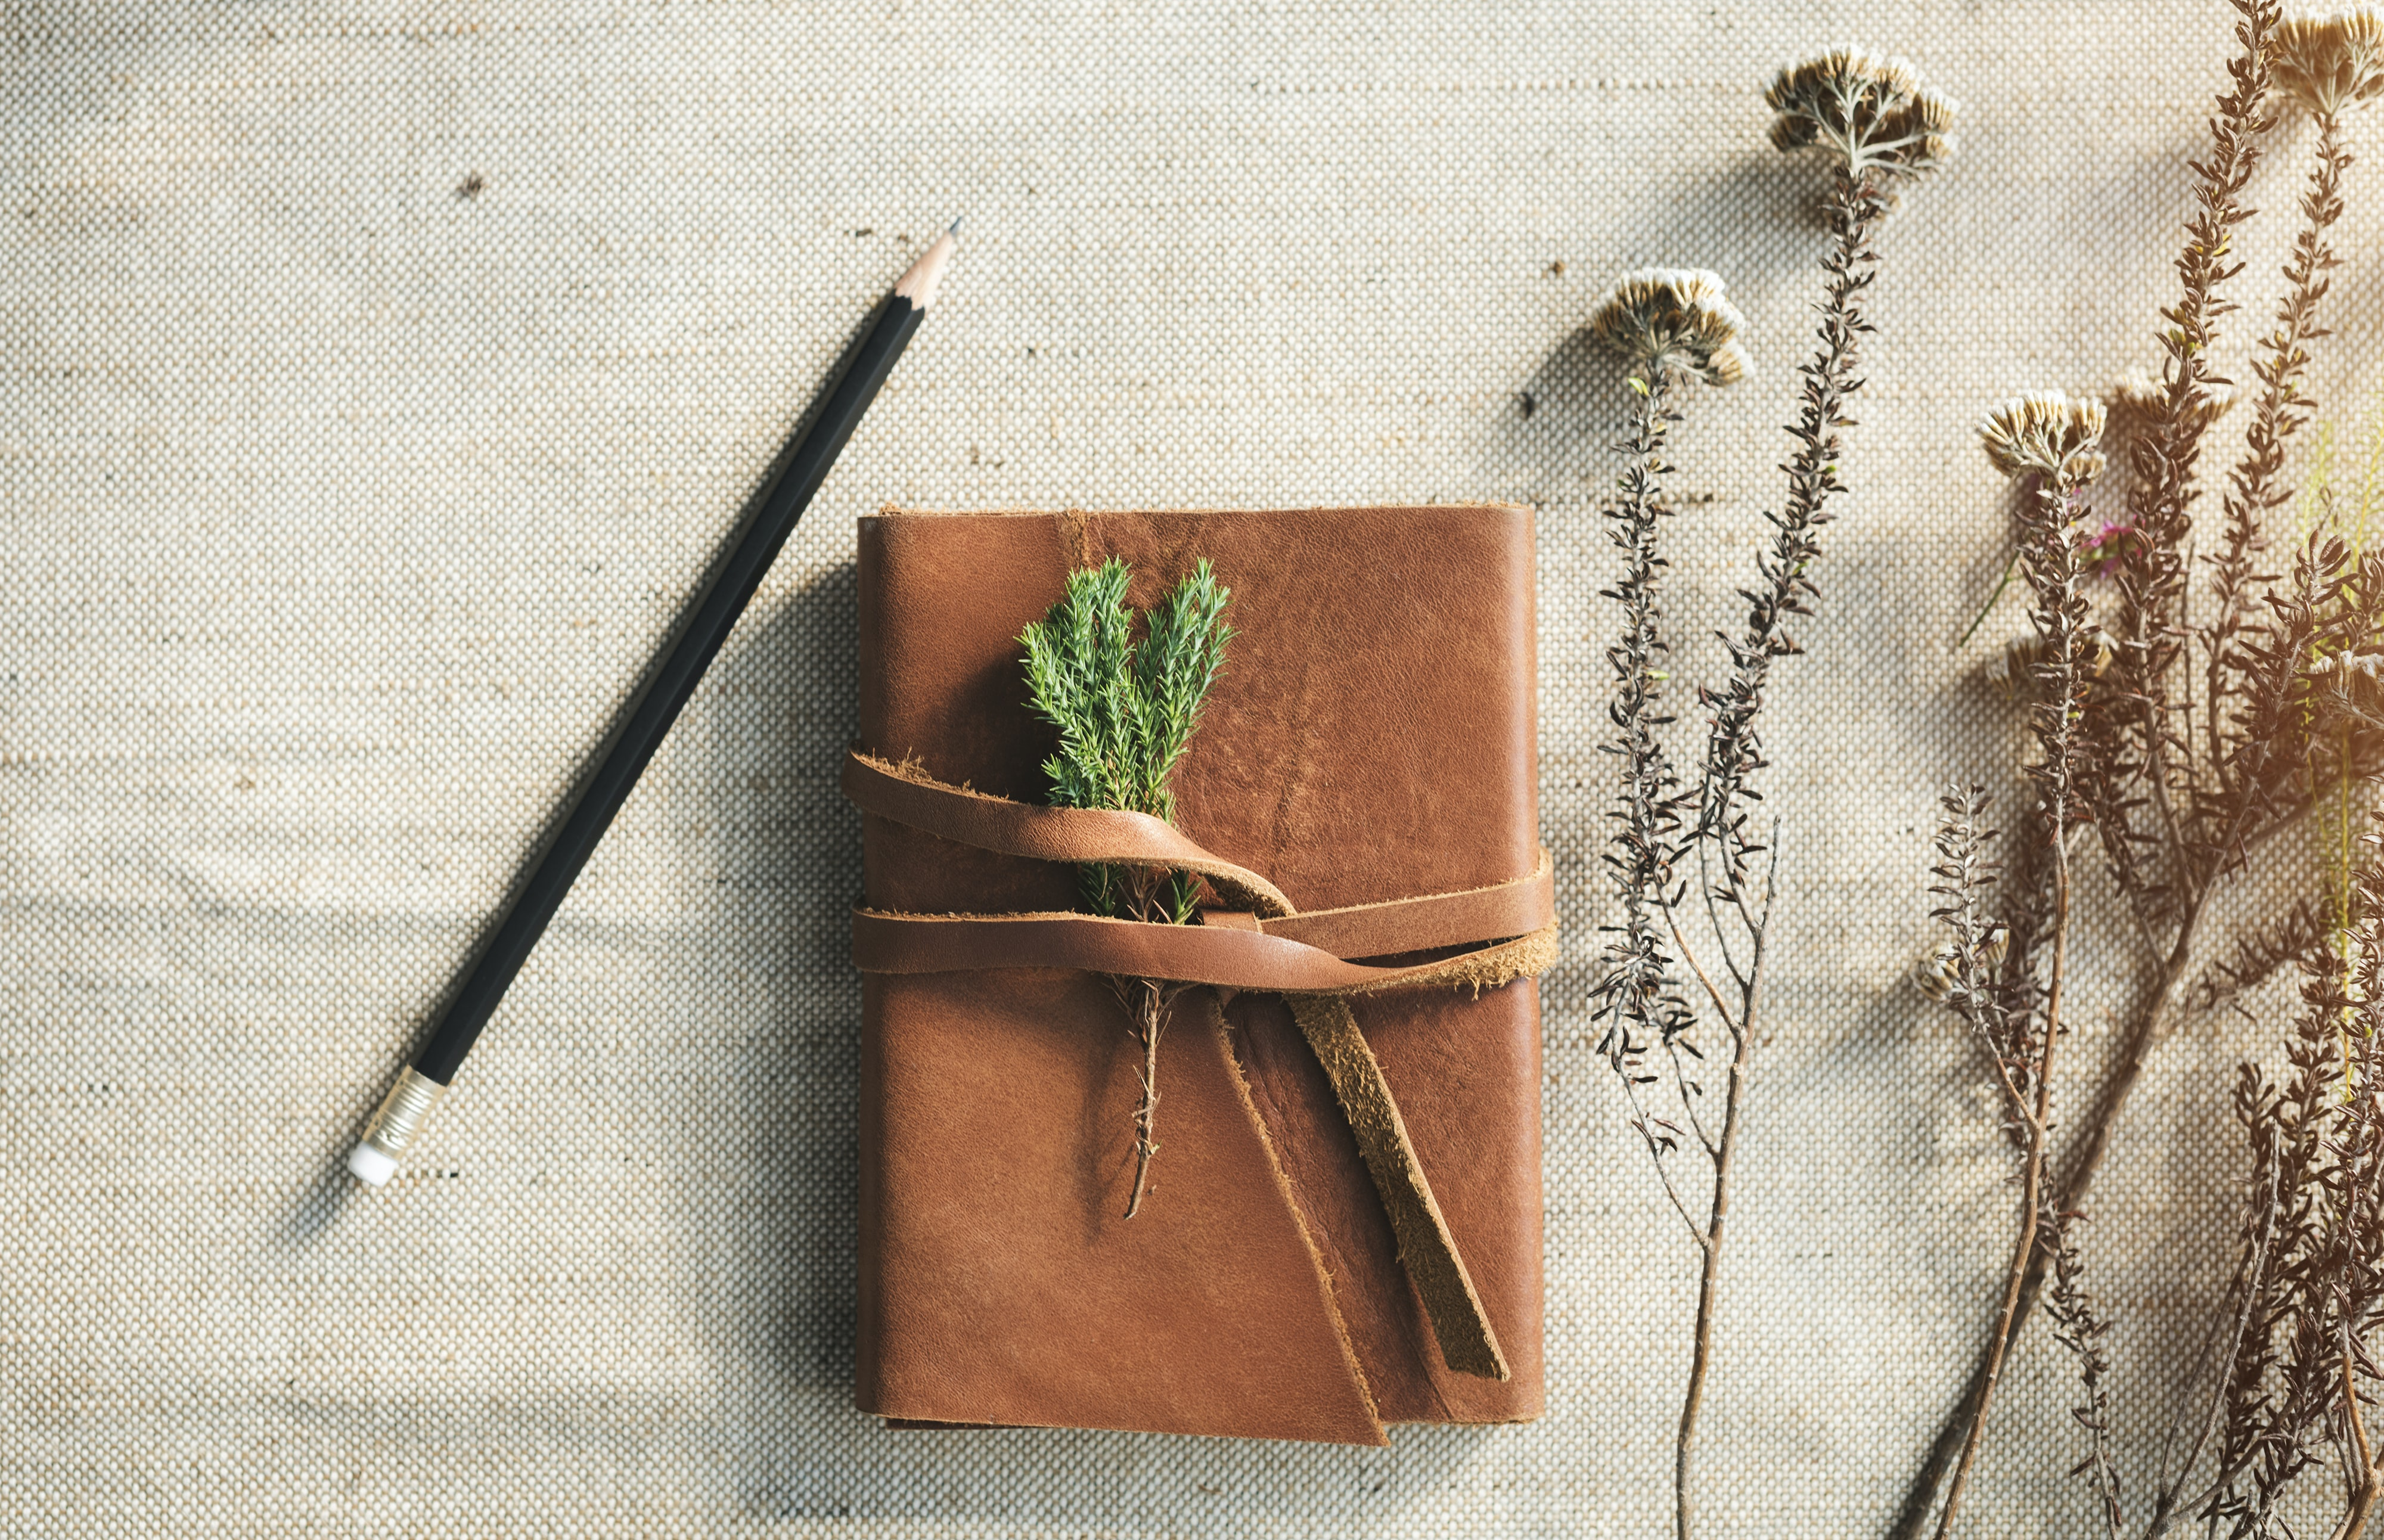 pencil beside book and flowers